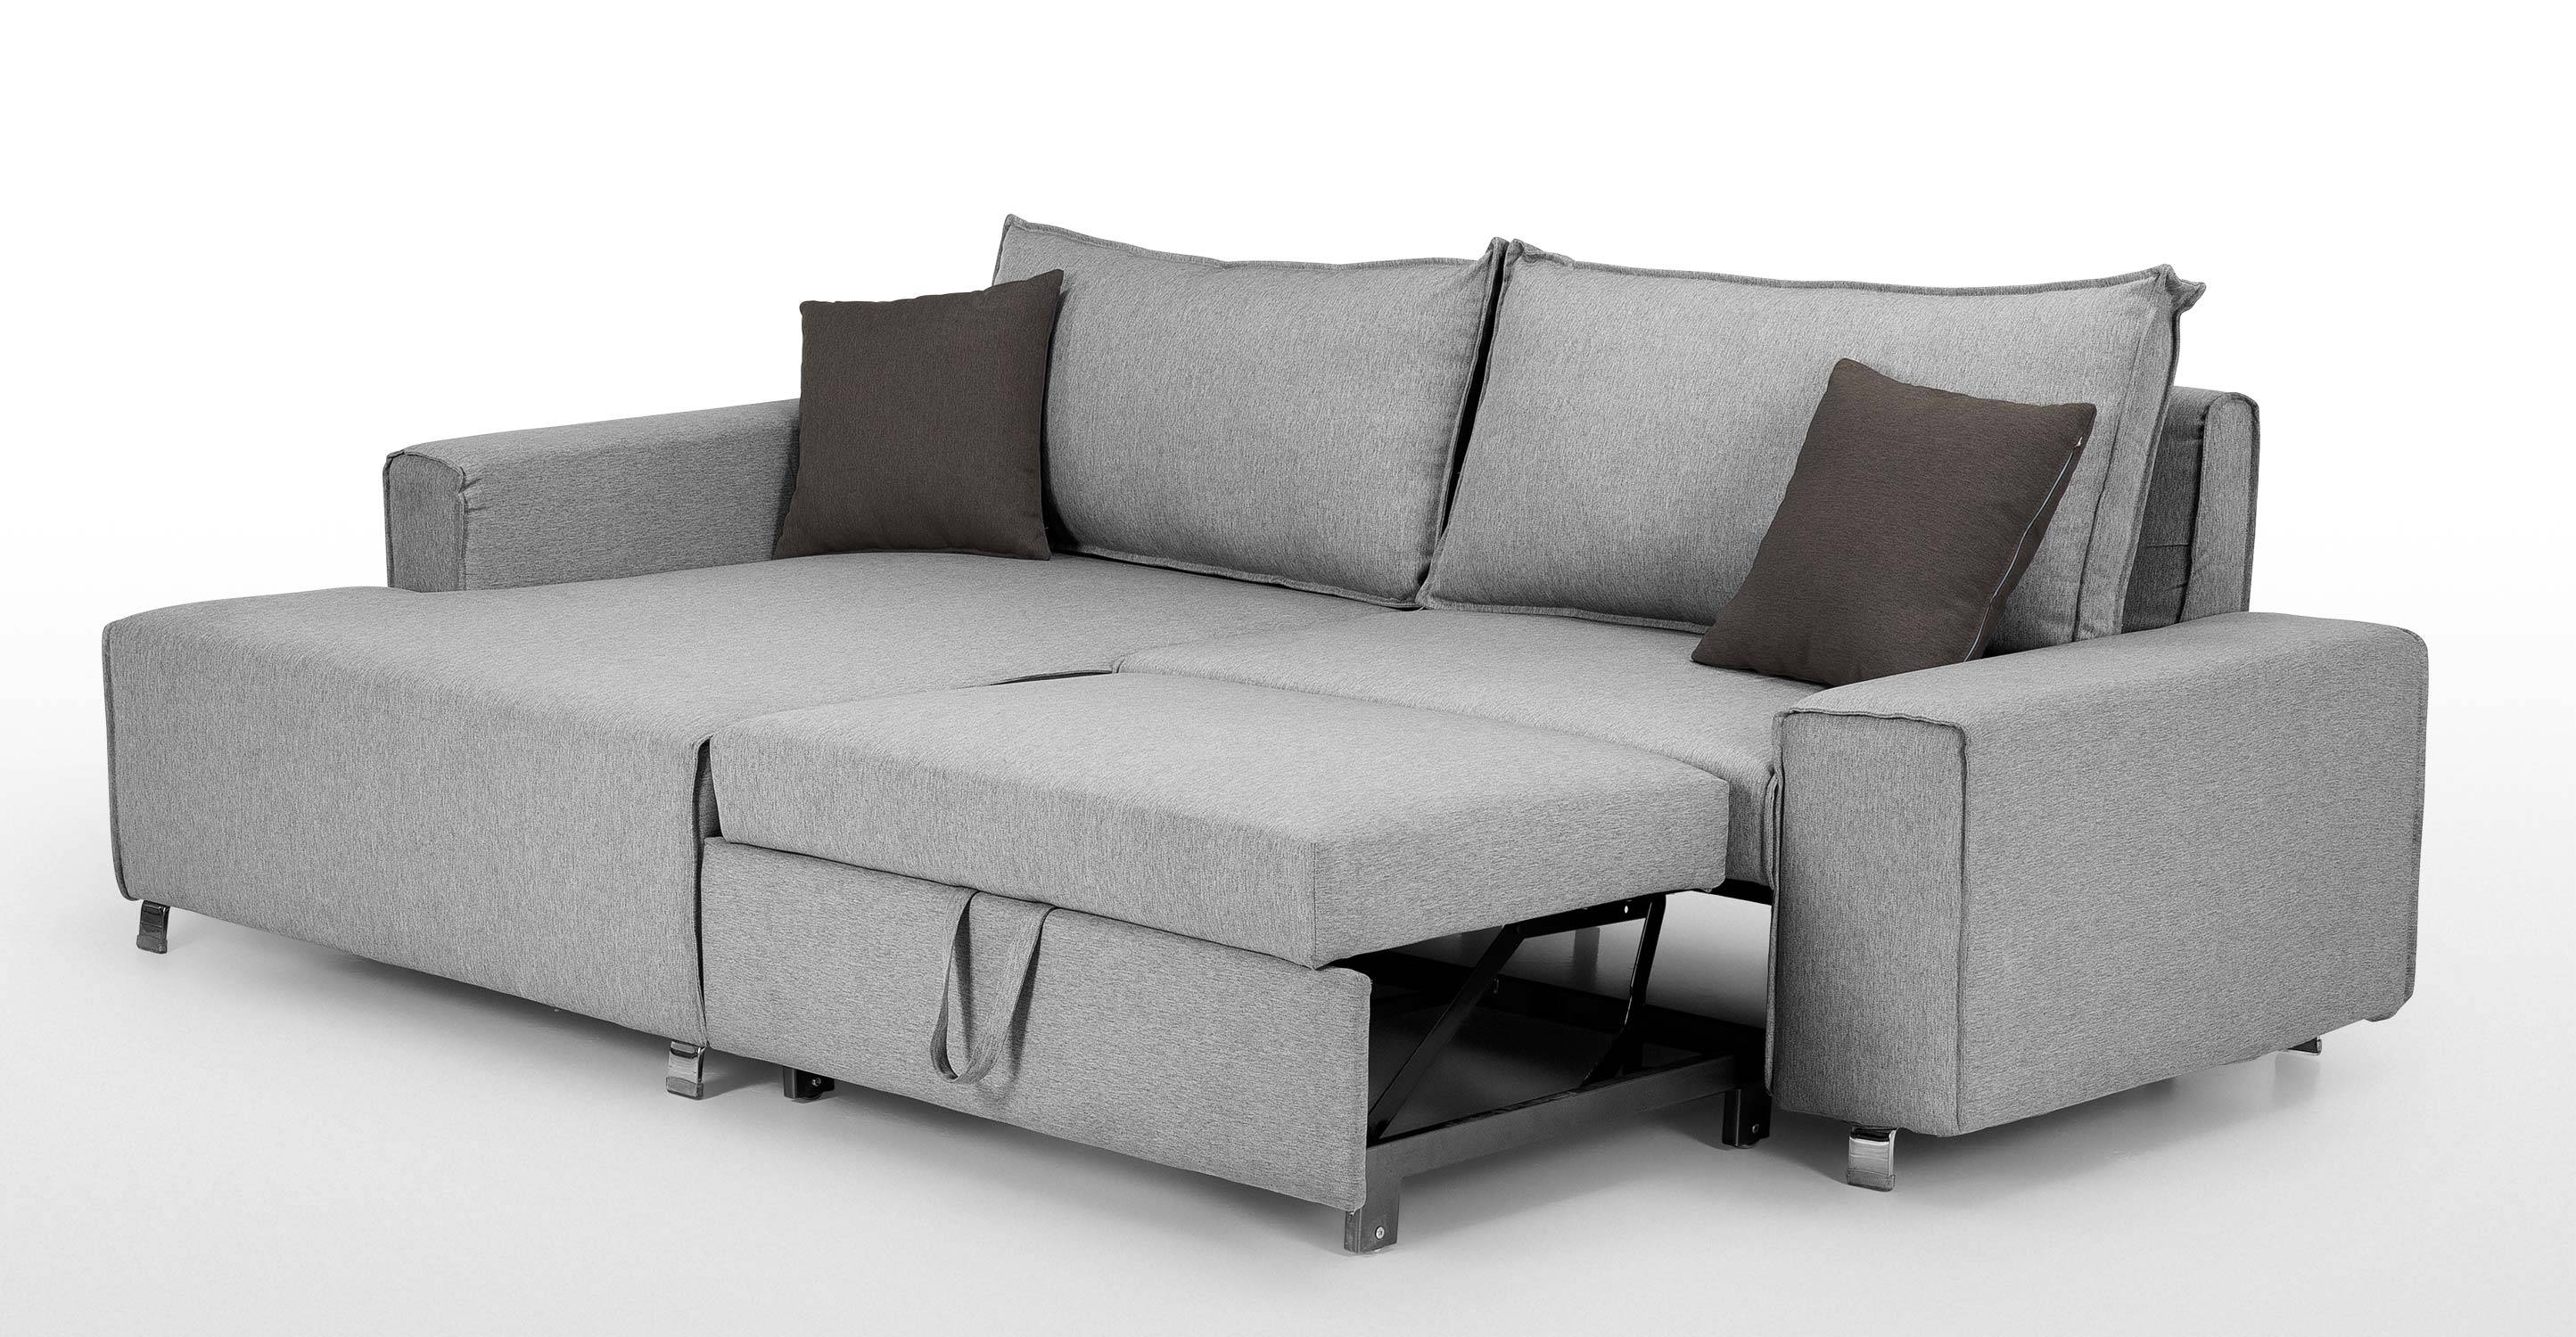 Small Sofa Bed With Storage | Tehranmix Decoration with Storage Sofa Beds (Image 15 of 30)